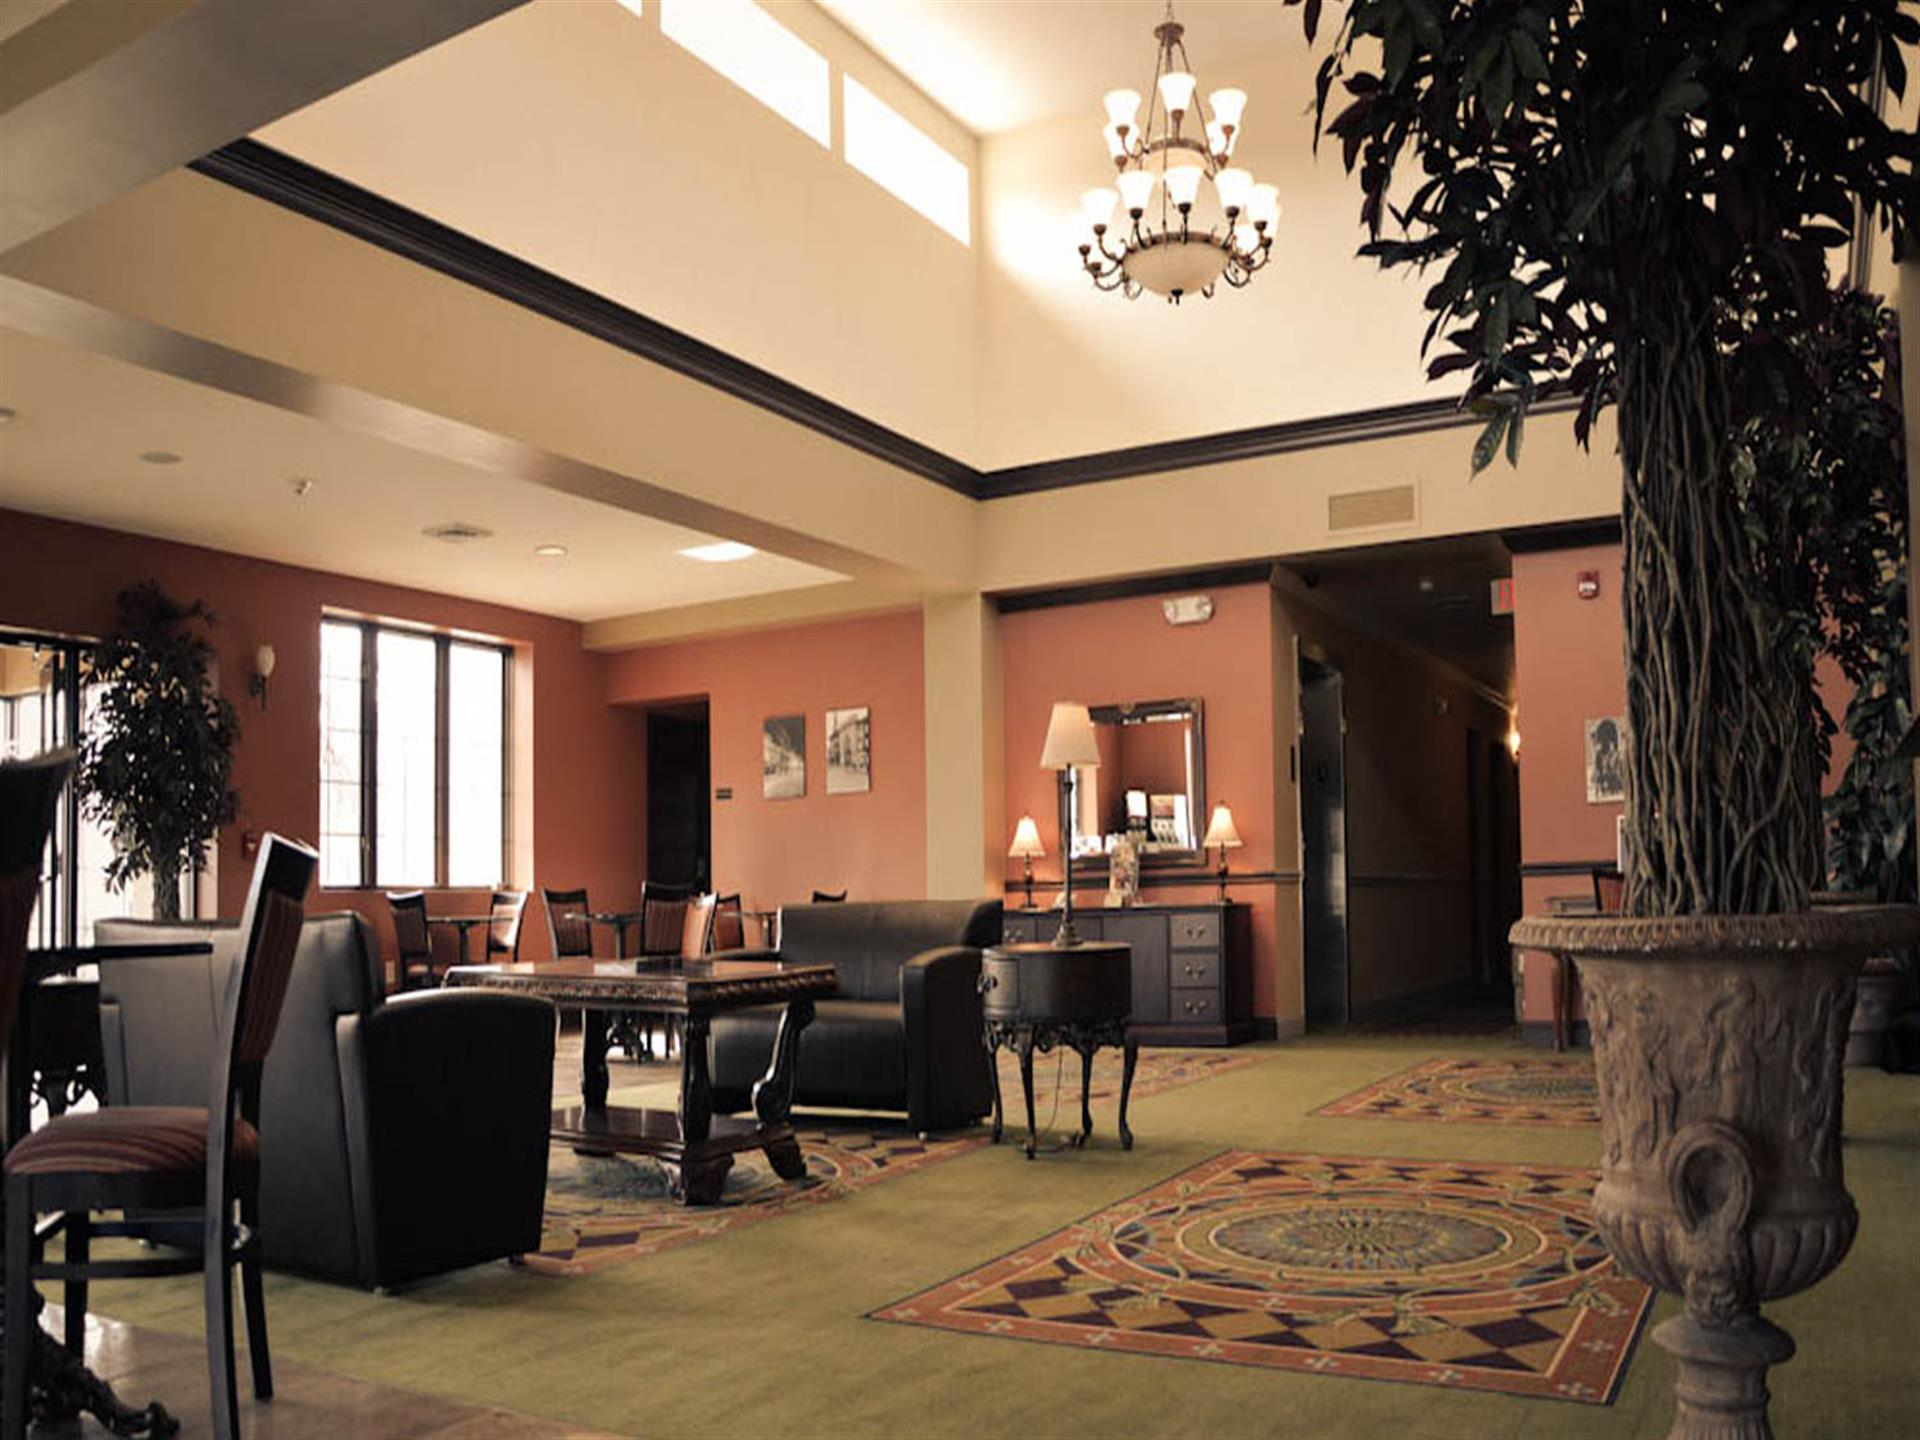 inside lobby with chairs and fancy lighting